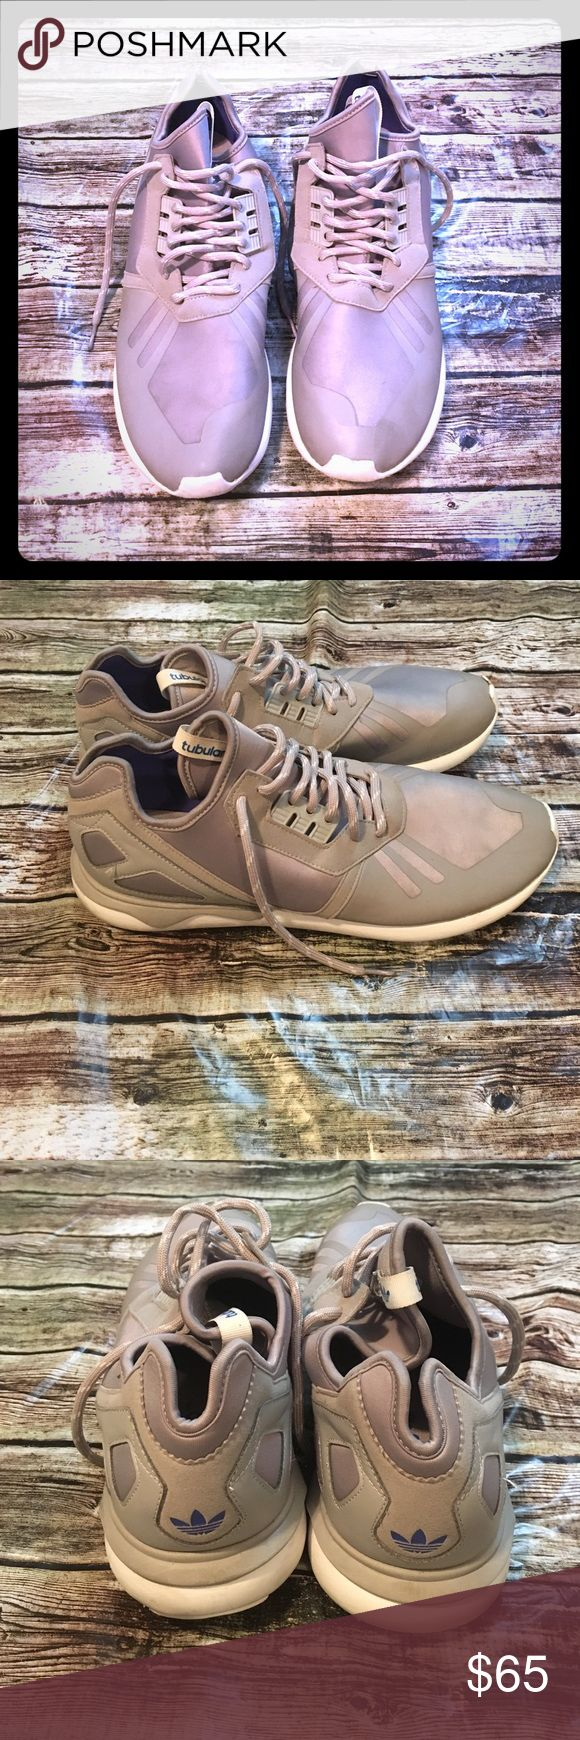 Adidas Tubular Shoes Great shoes, in great pre owned condition! Size 14. adidas Shoes Athletic Shoes